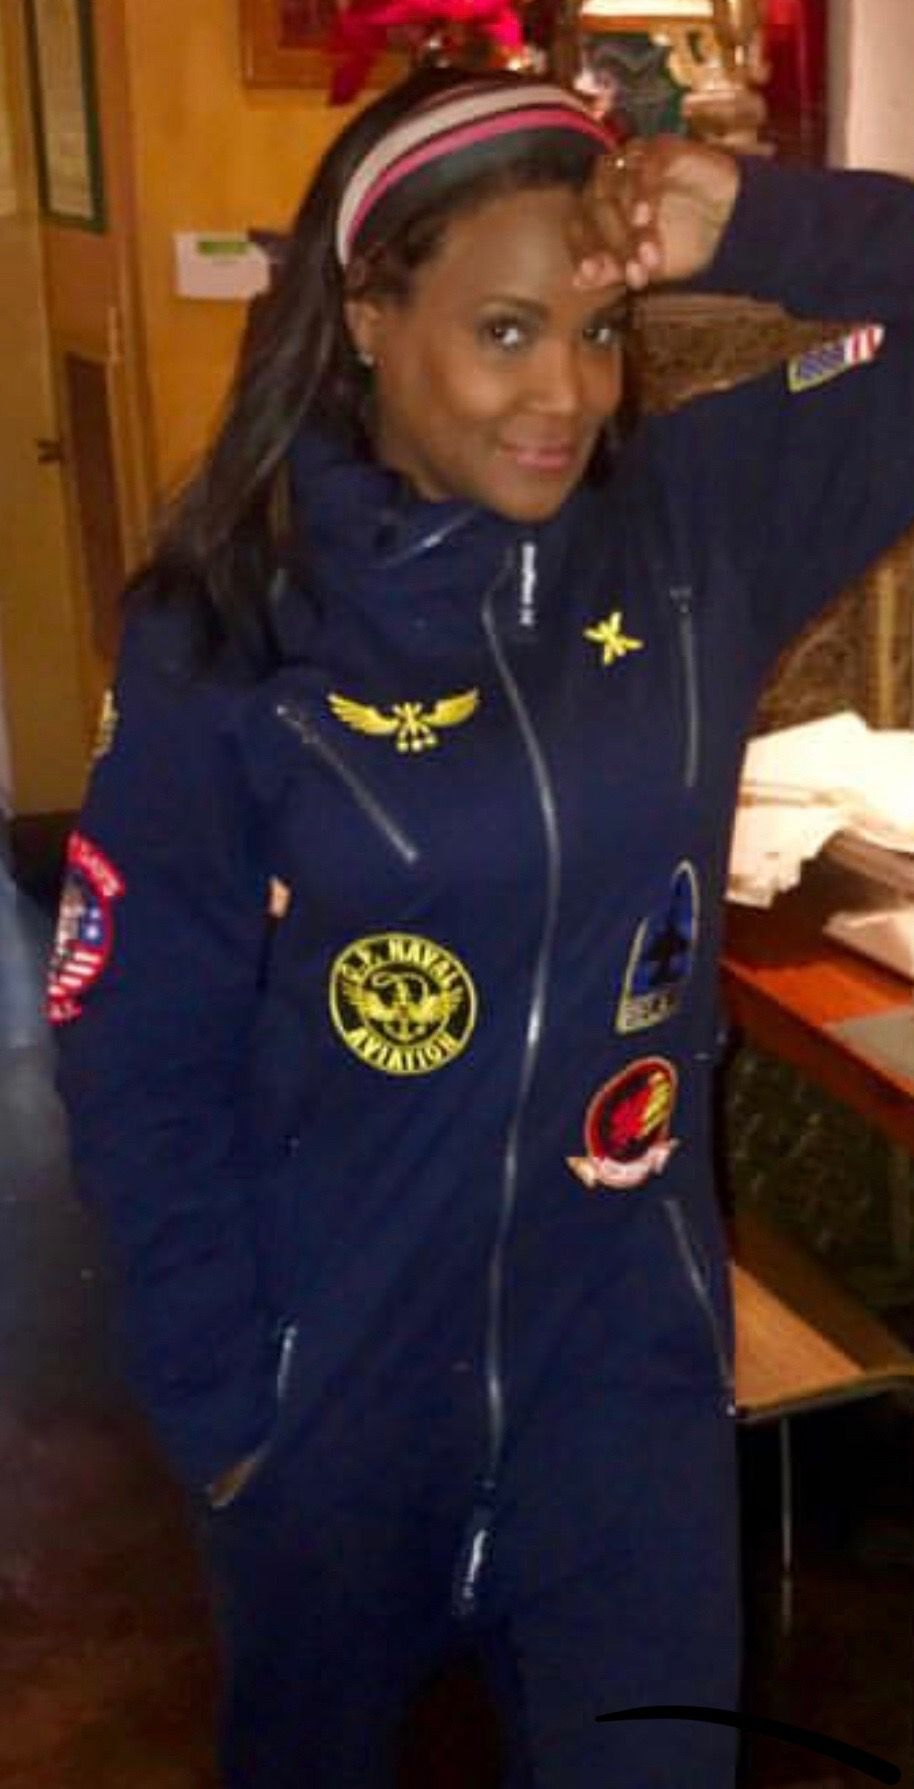 Pin by Patrica BeckwithBusby on Patches Varsity jacket